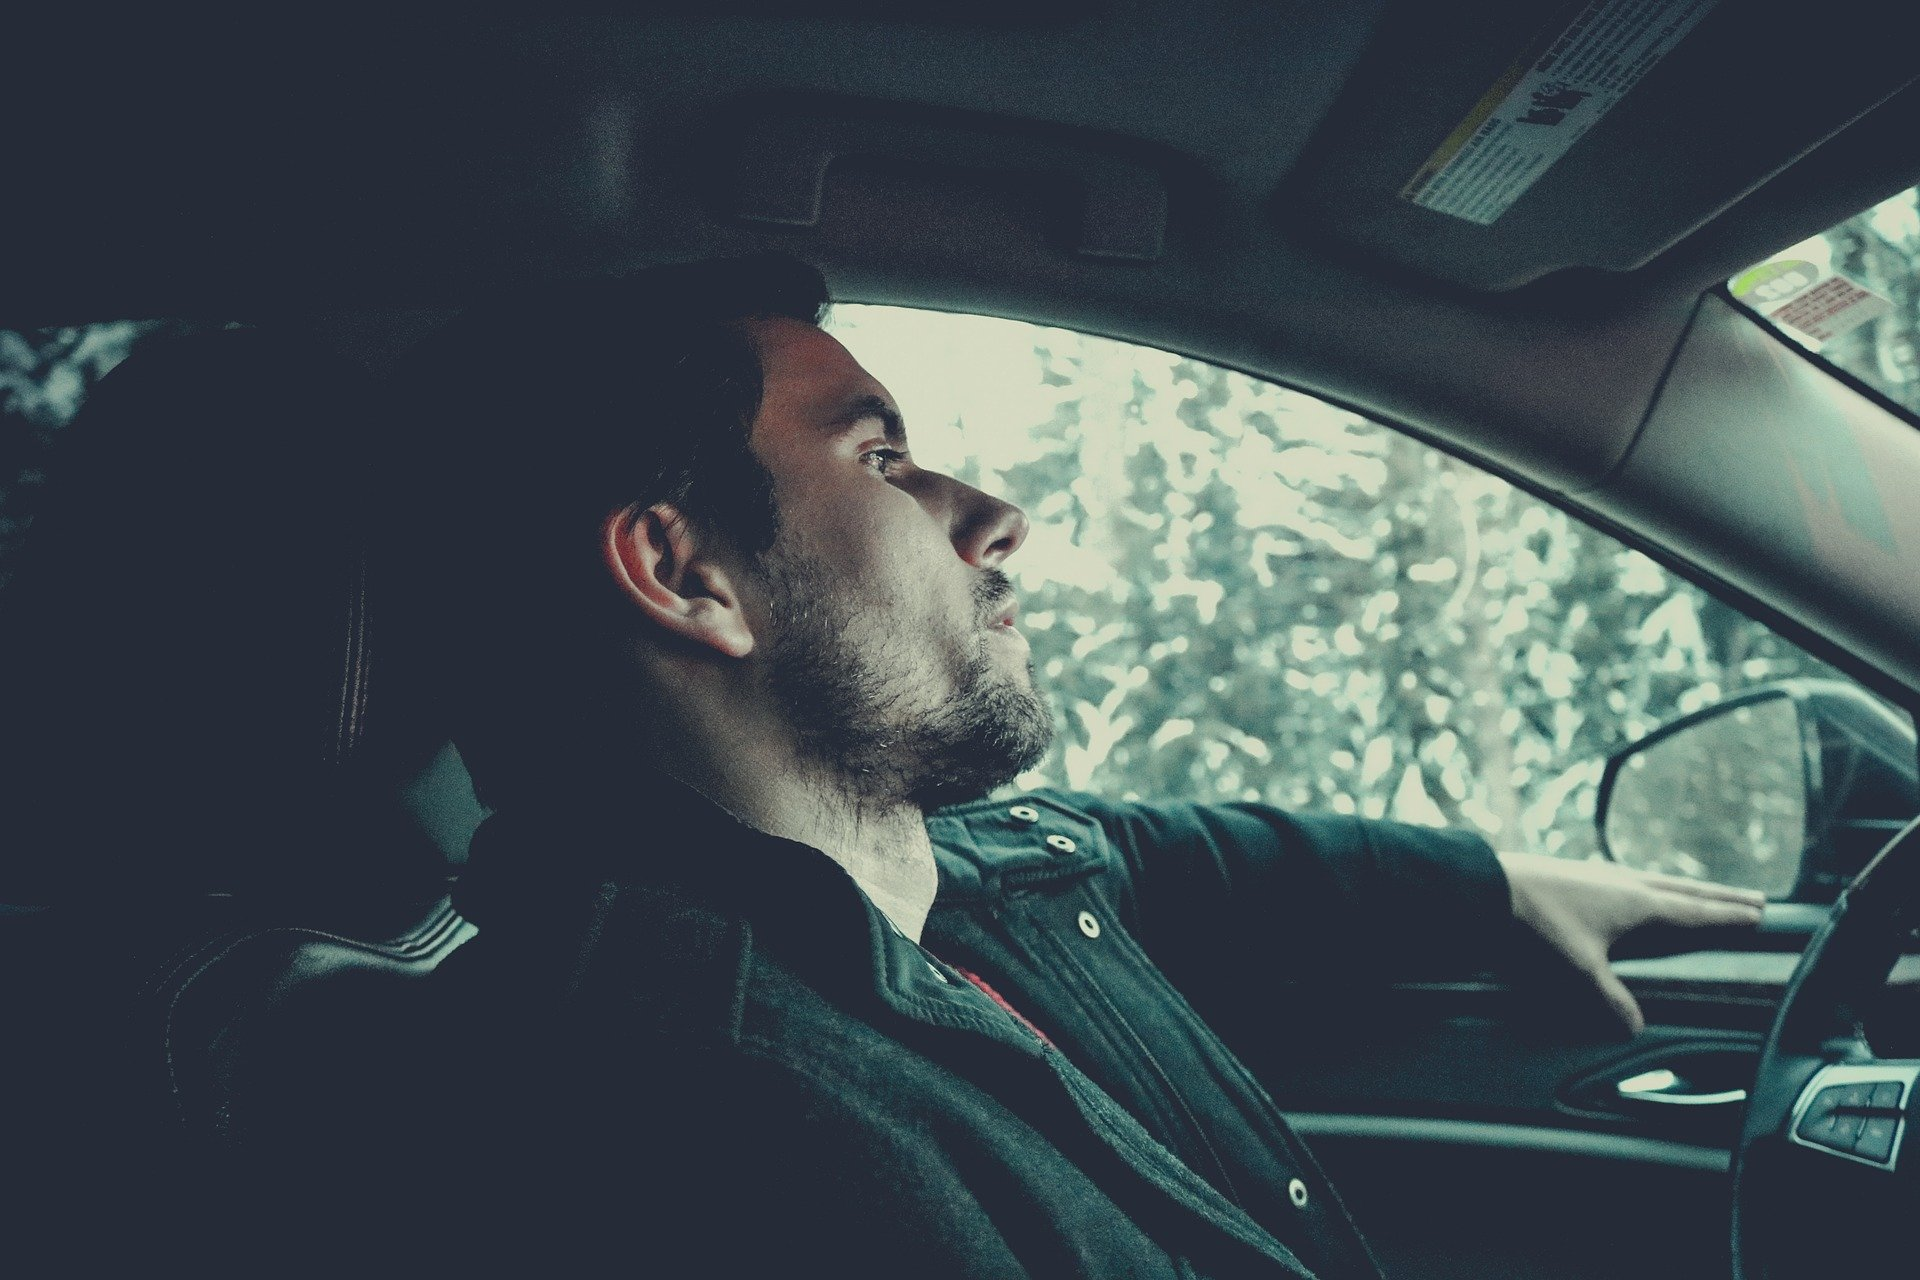 Pictured - A young man in deep thoughts while inside a car   Source: Pixabay